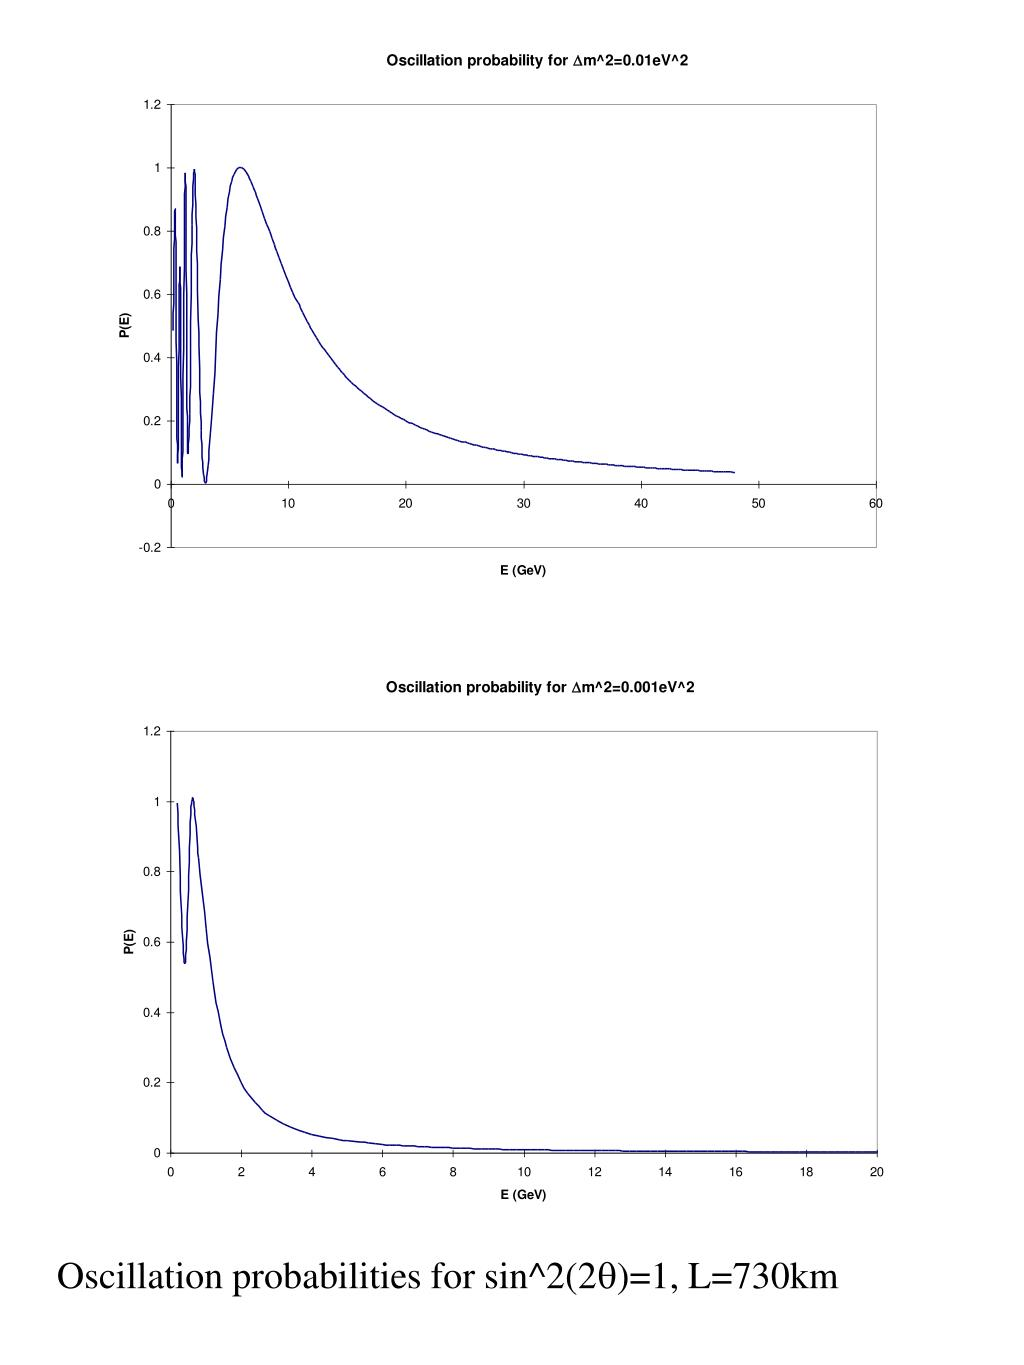 Oscillation probabilities for sin^2(2